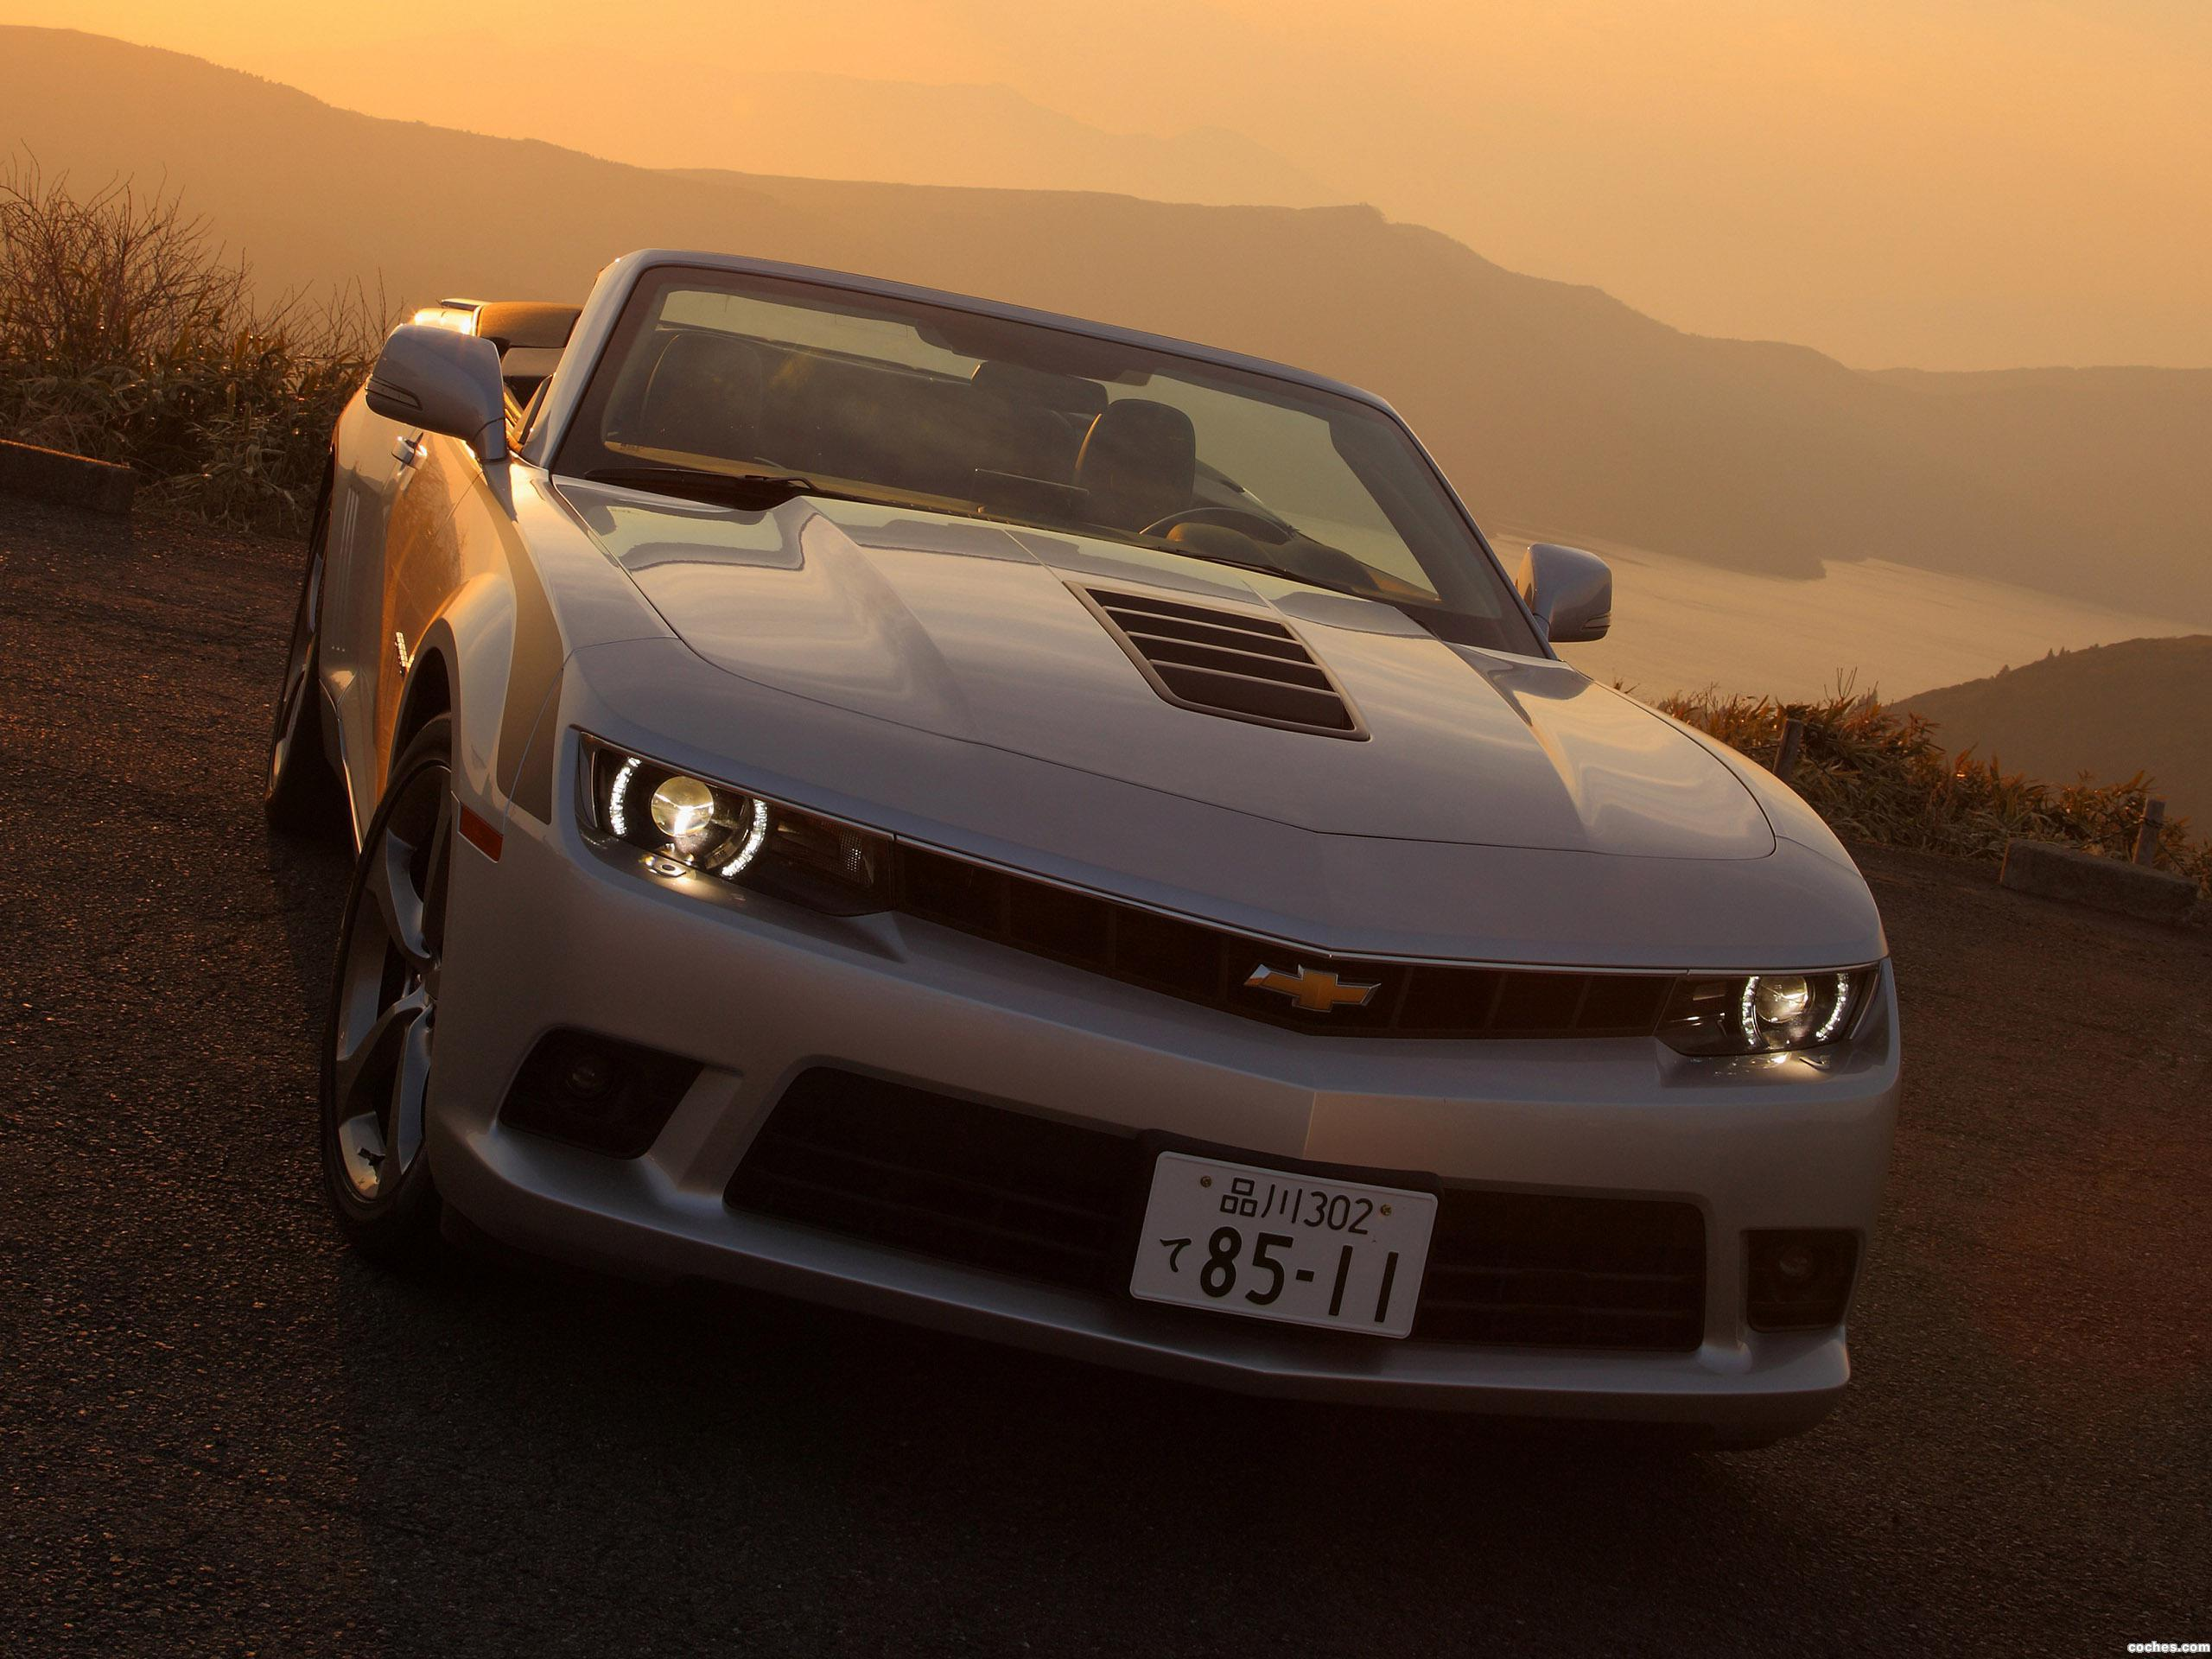 chevrolet_camaro-lt-rs-convertible-japan-2013_r18